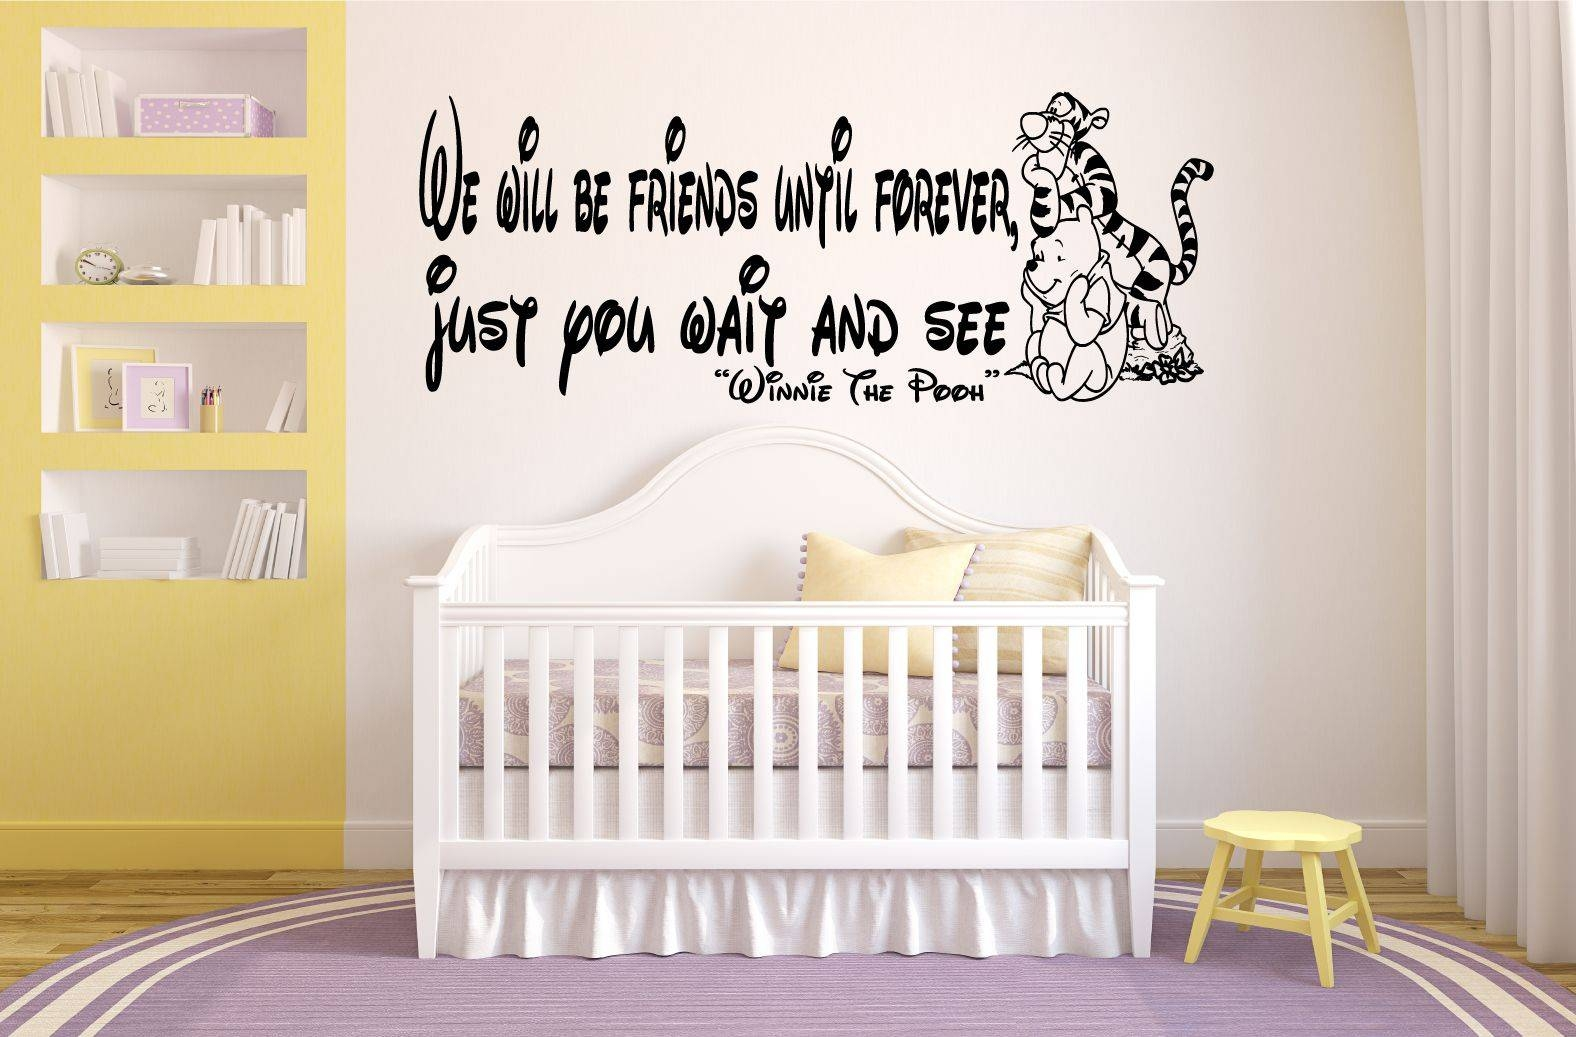 Custom 30+ Winnie The Pooh Wall Art Decorating Design Of Wall With Regard To Most Recent Winnie The Pooh Wall Art (View 4 of 20)